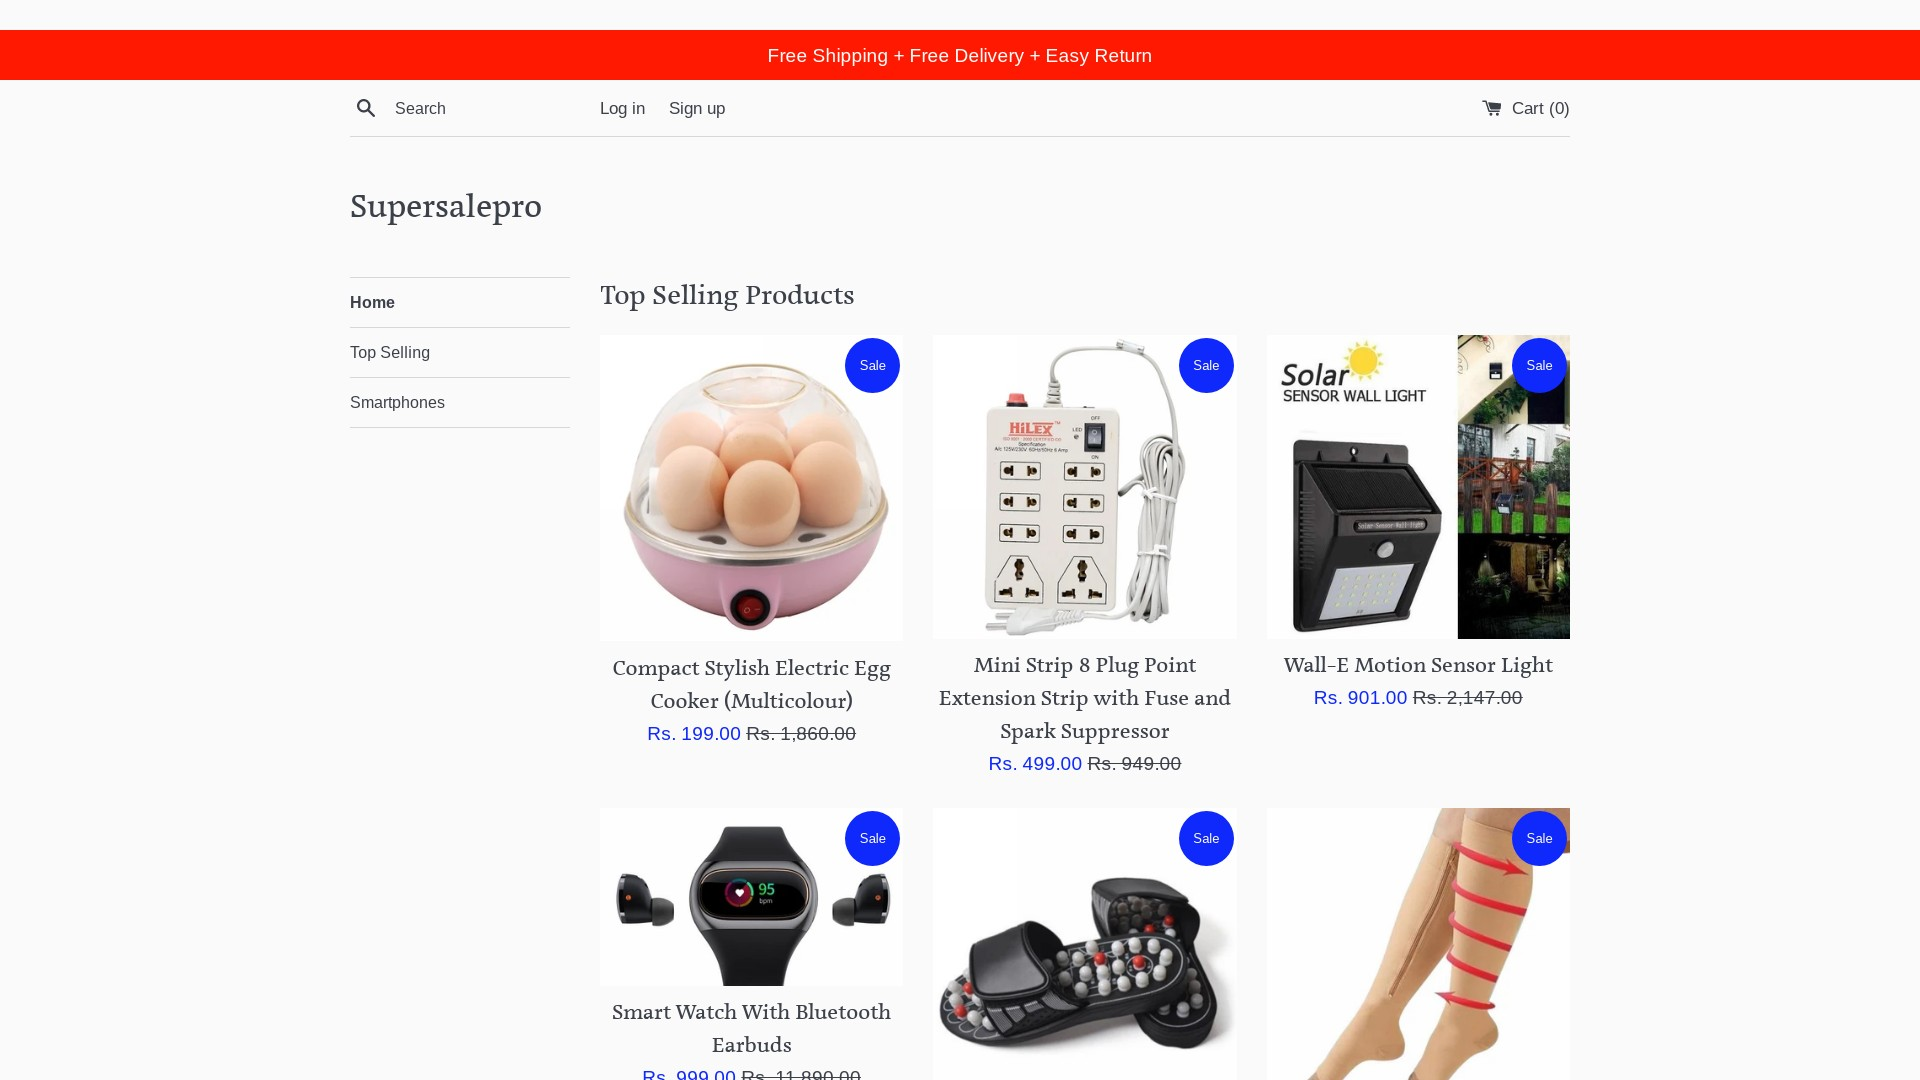 Is Supersalepro-online a Scam? Review of the Online Store